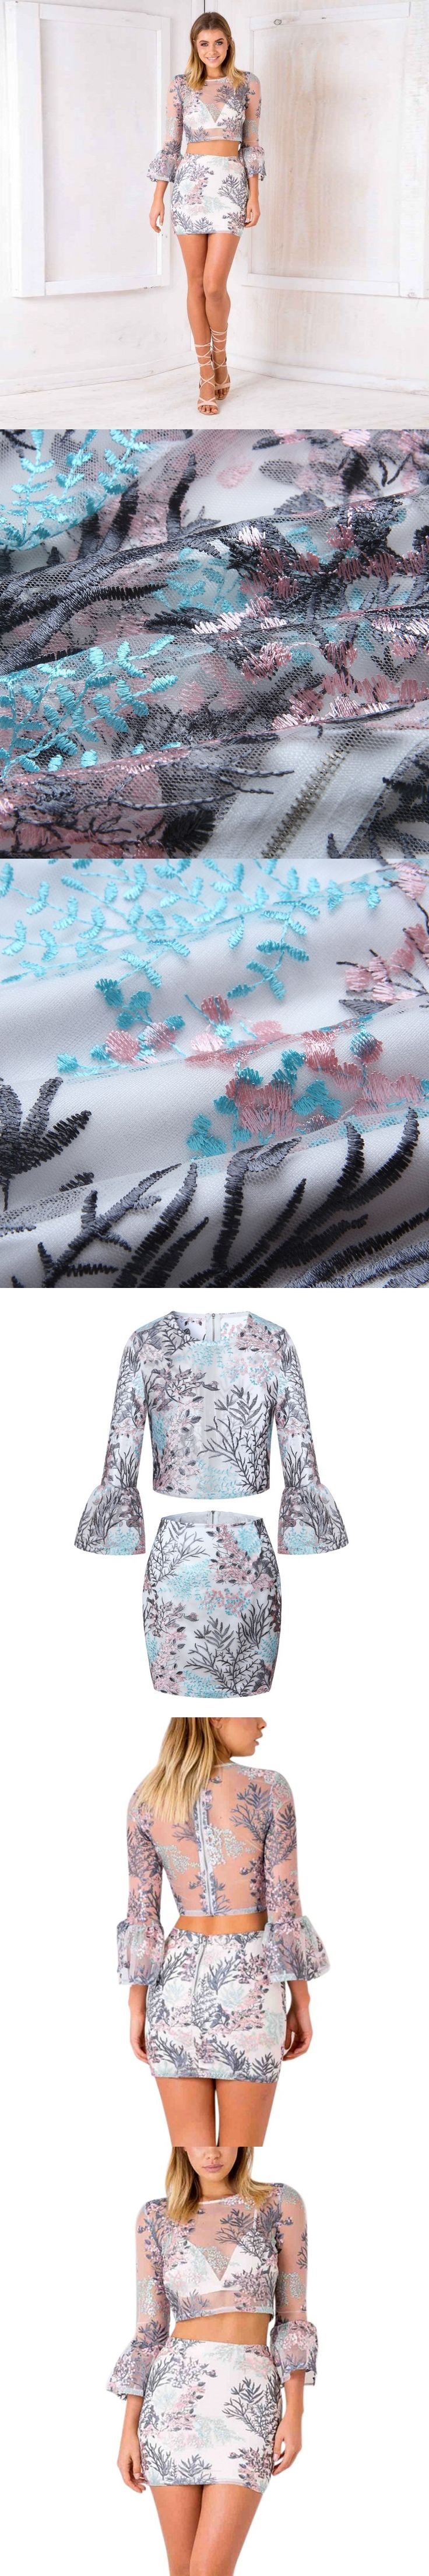 Mesh Crop Tops and Skirts Plant Printed Embroidery 2 Piece Set Women Transparant Slim Clothes Sets 2017 O Neck Sexy Suits